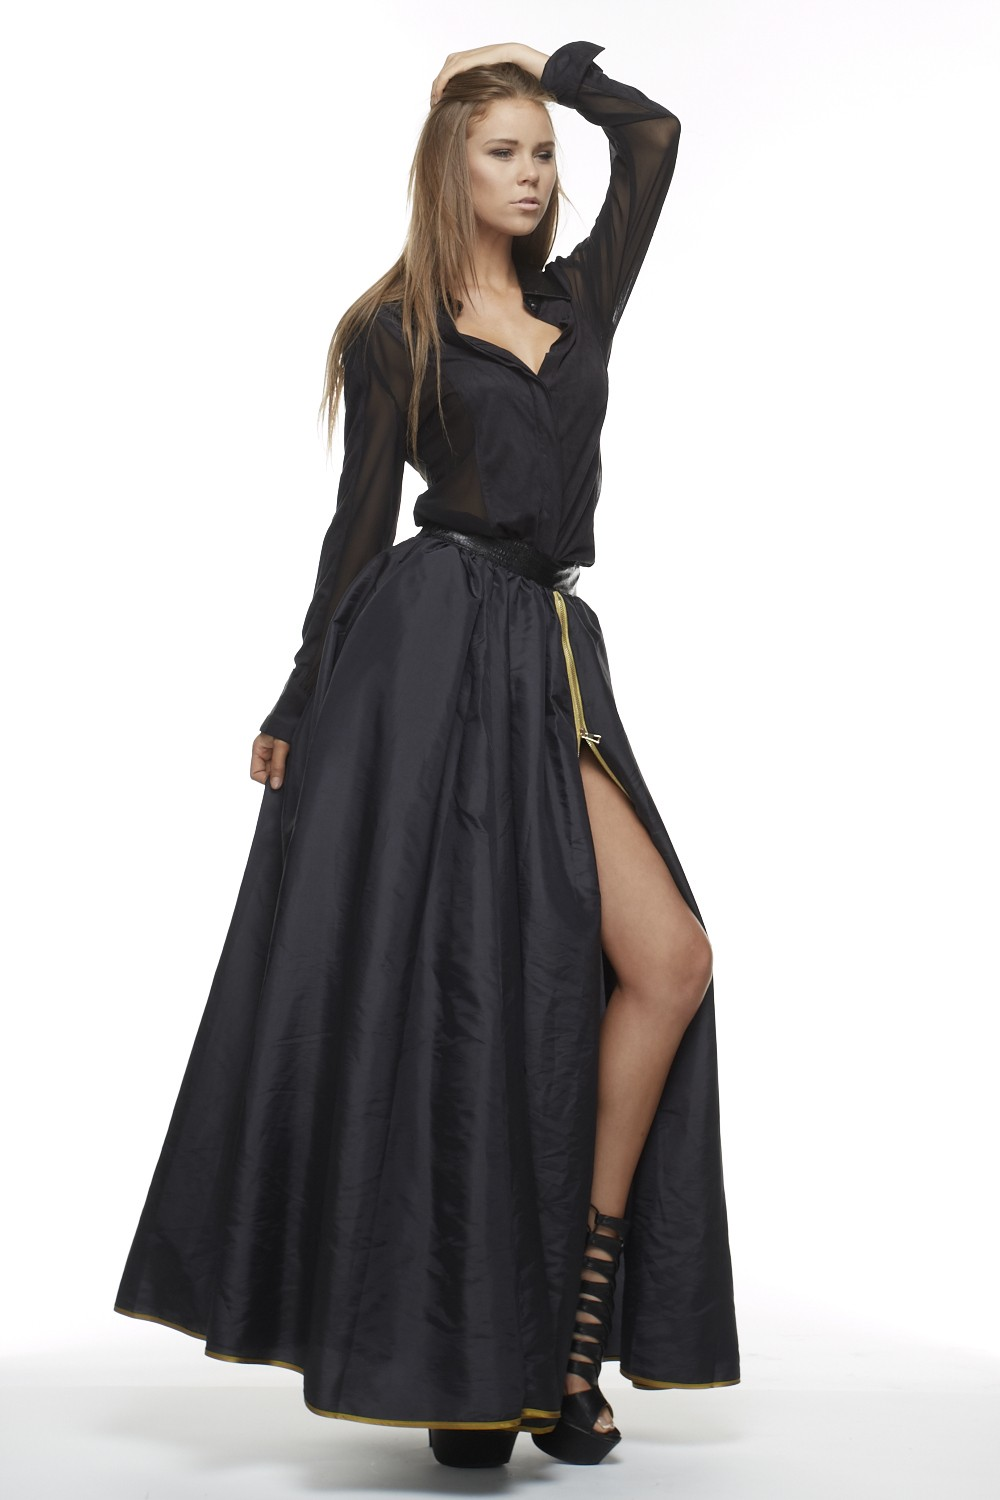 Black Widow Maxi Skirt sold by Stylo Clothing and Shoes